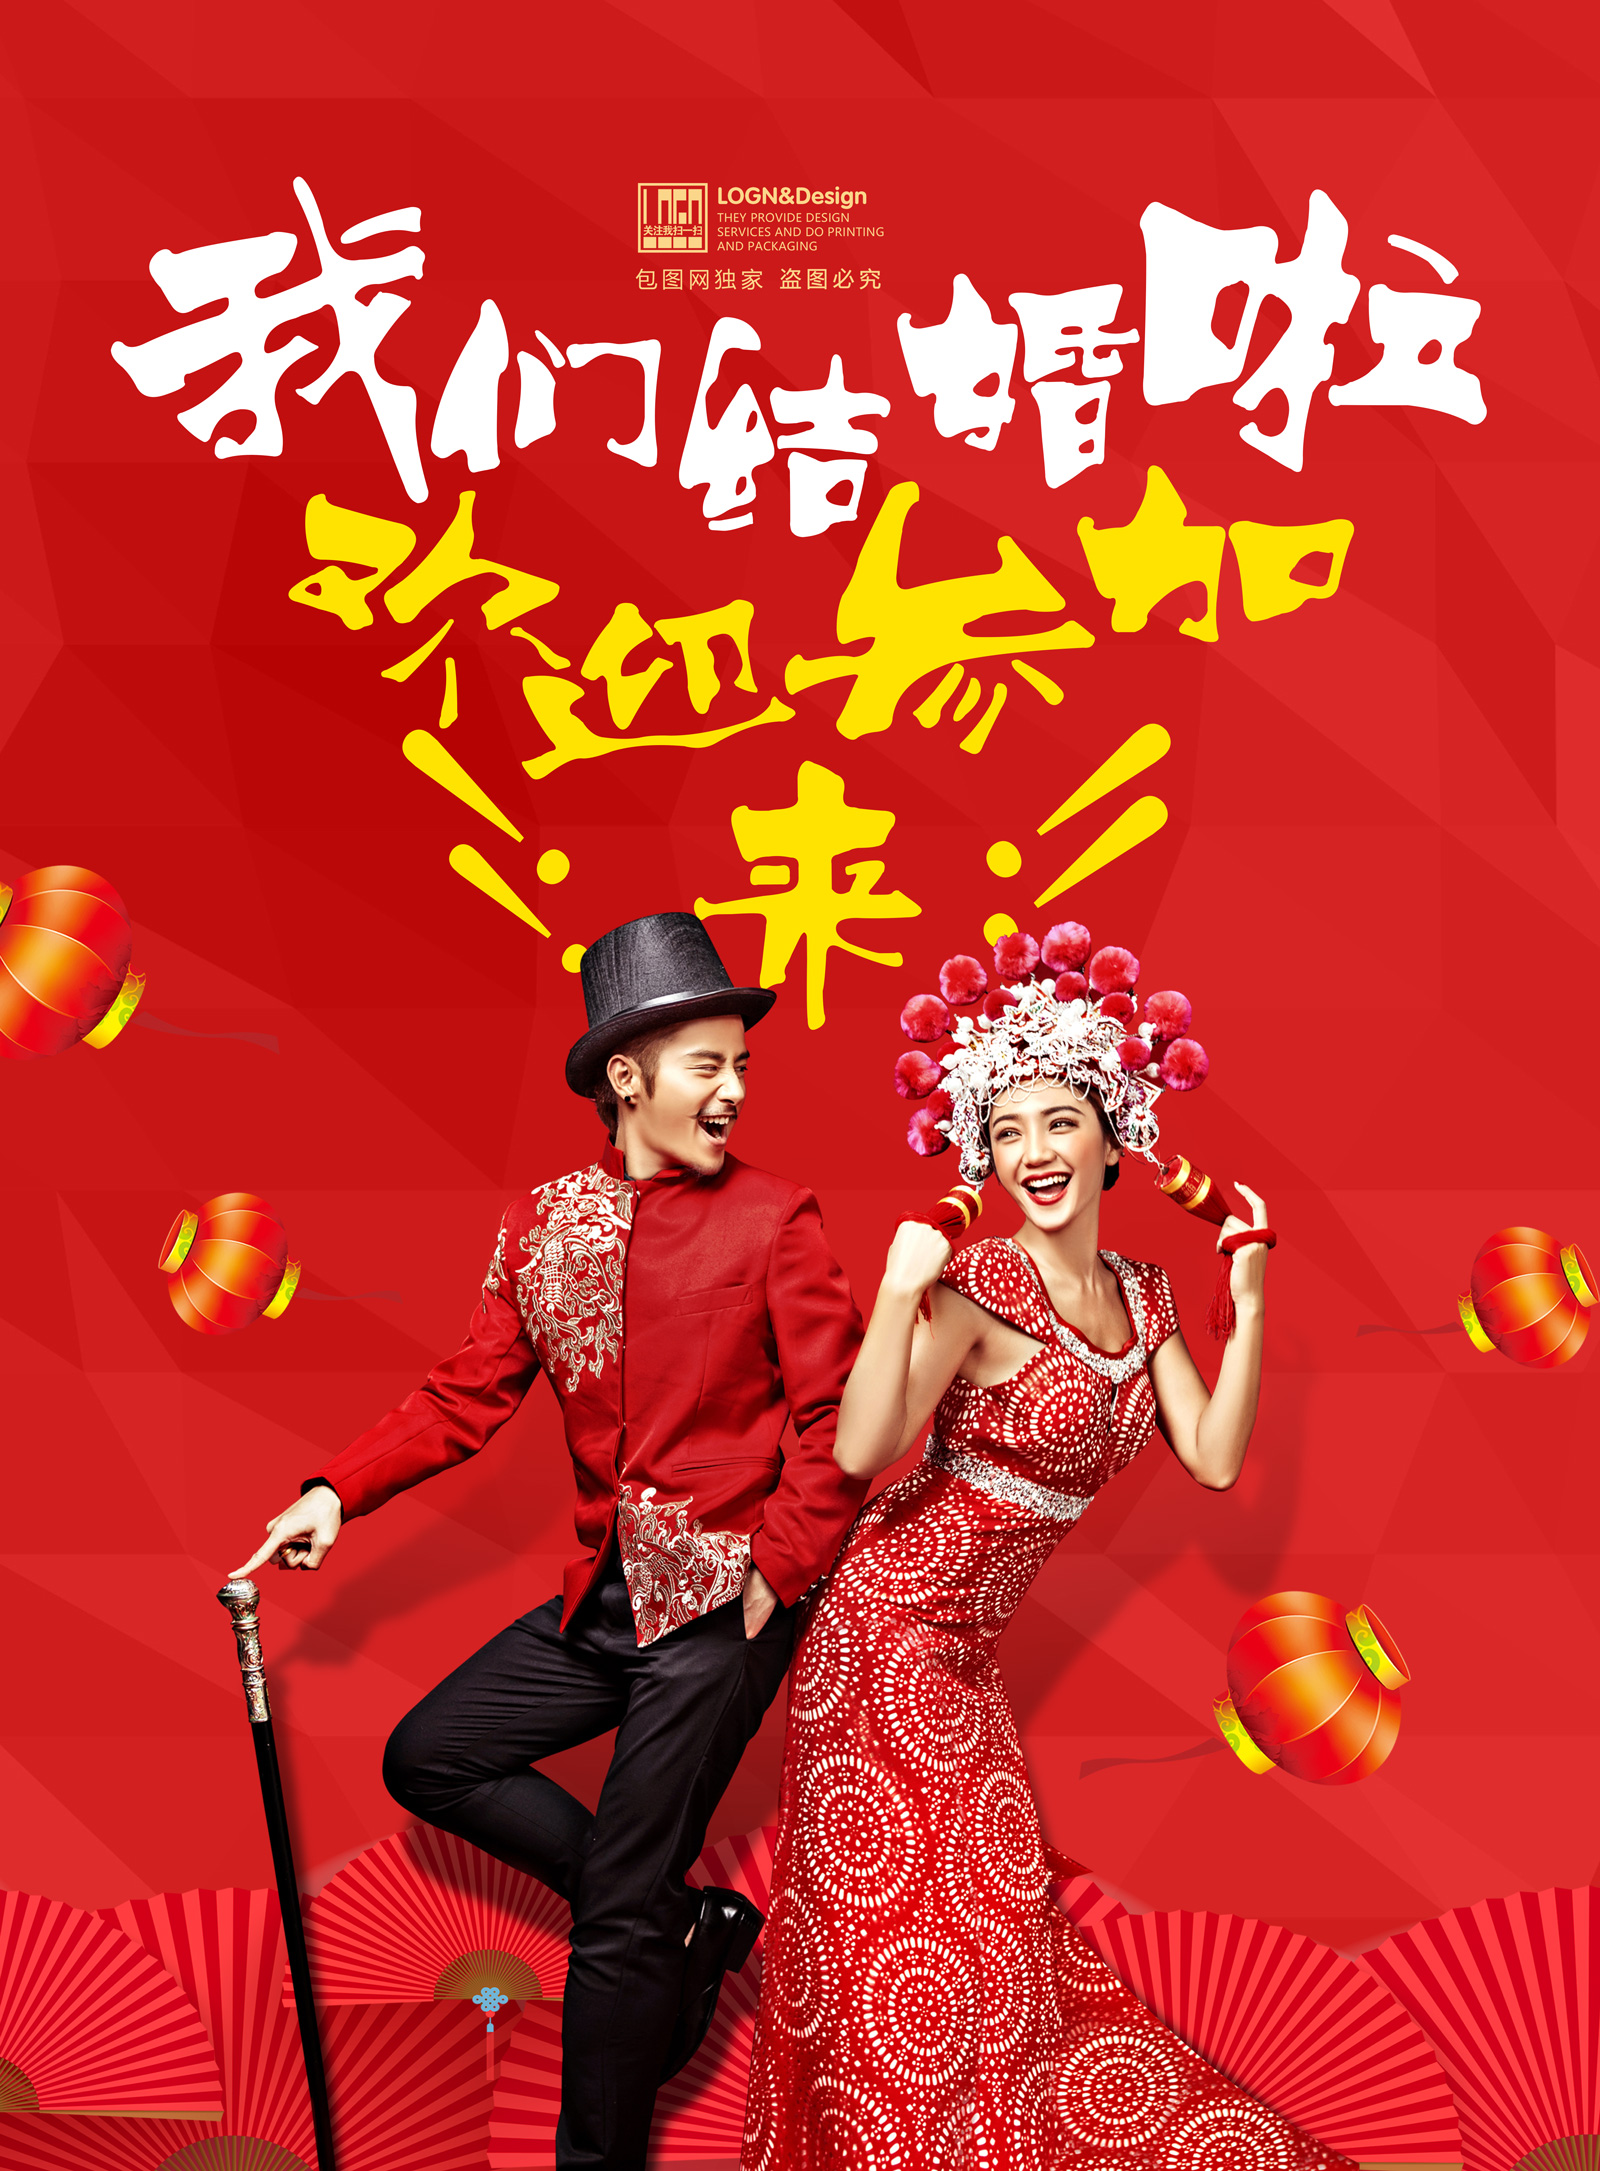 Welcome to our wedding China PSD File Free Download